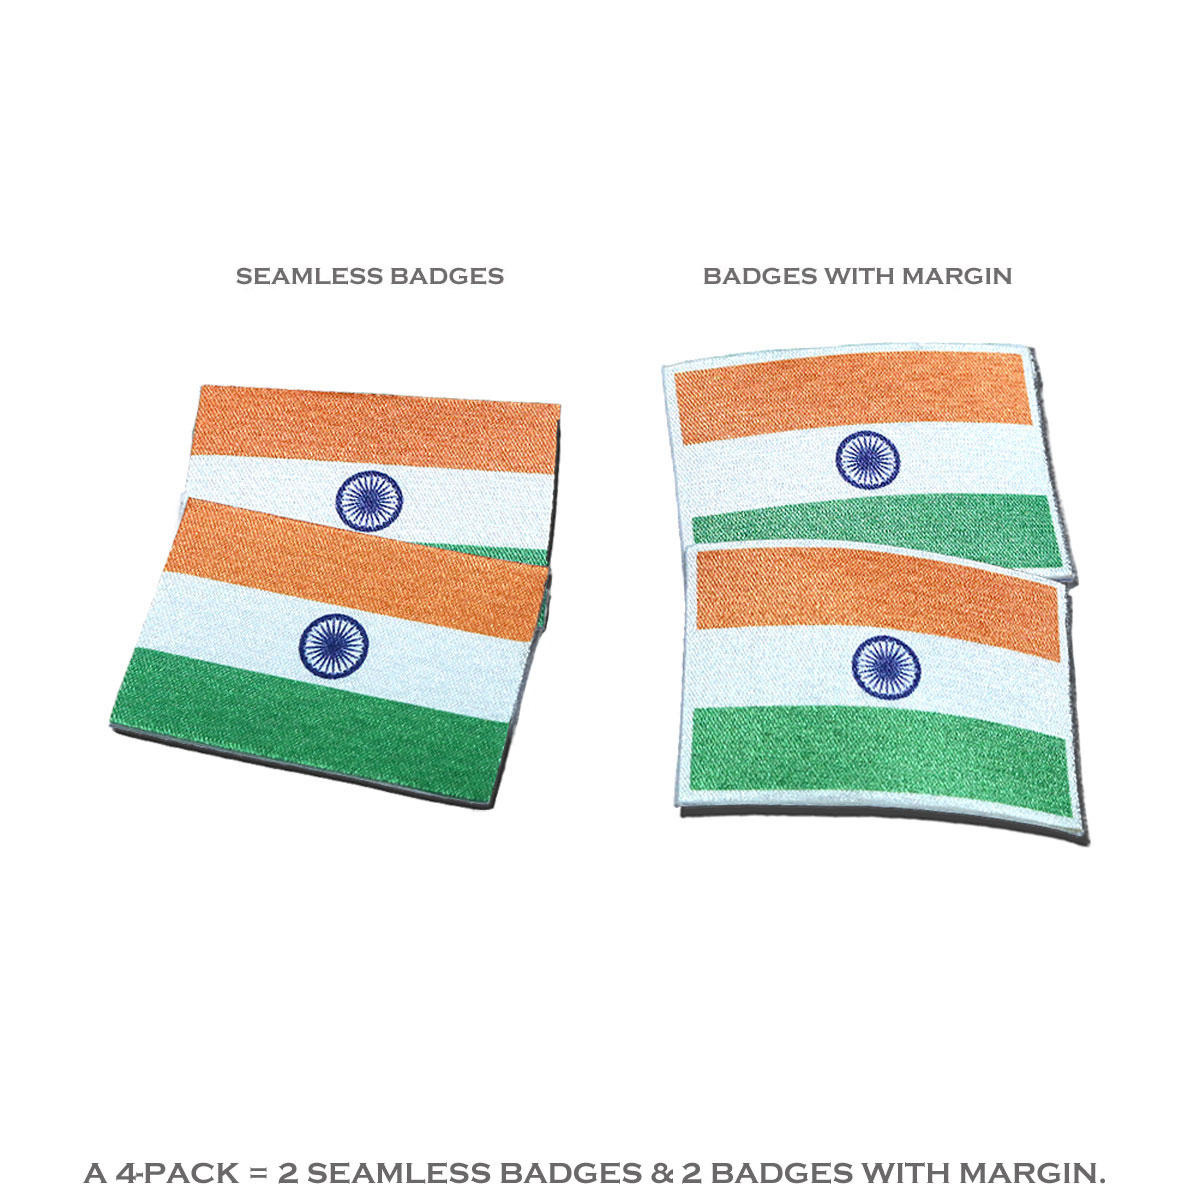 Indian Miniature Flag High Quality Badges for display on Caps, T-shirts, Shirts or Other Clothing Apparels (Pack of 4)